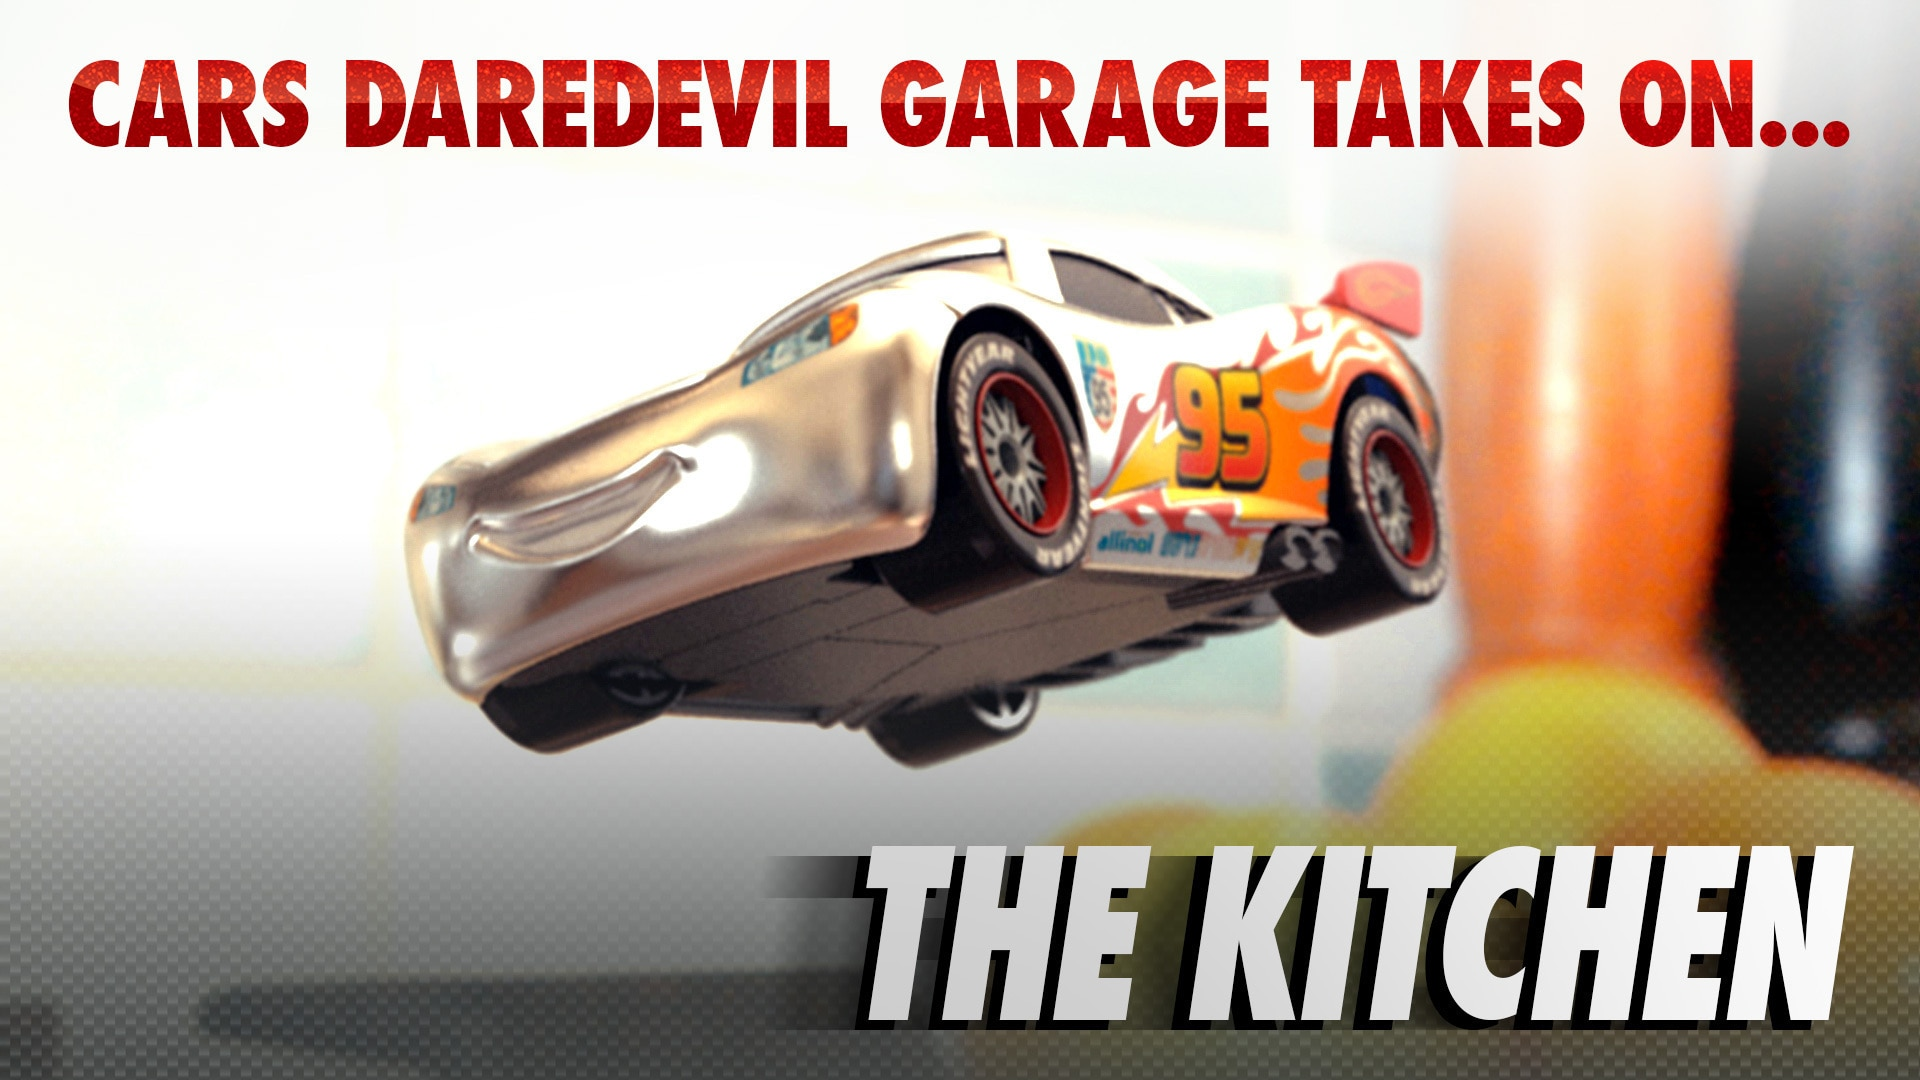 Cars Daredevil Garage: Silver Racers - The Kitchen